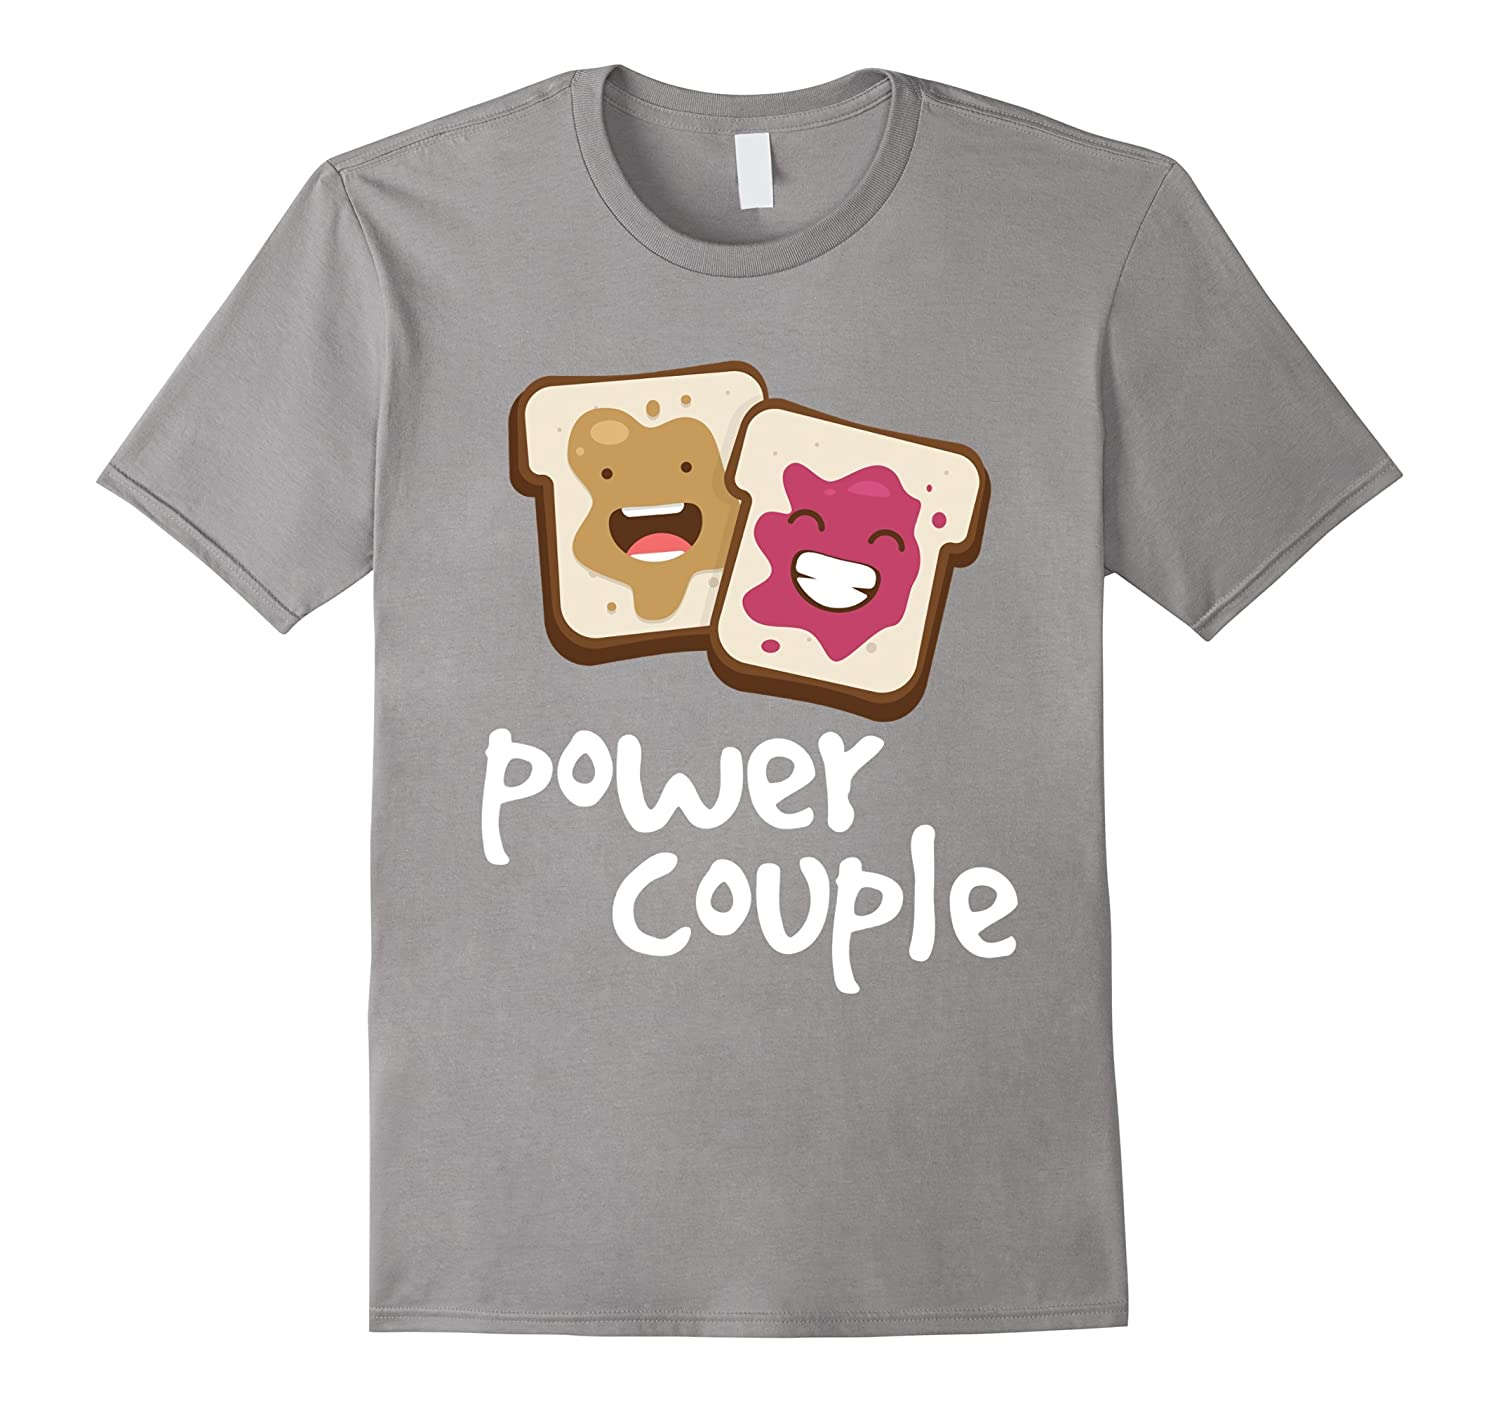 Peanut Butter and Jelly Power Couple Funny T-Shirt